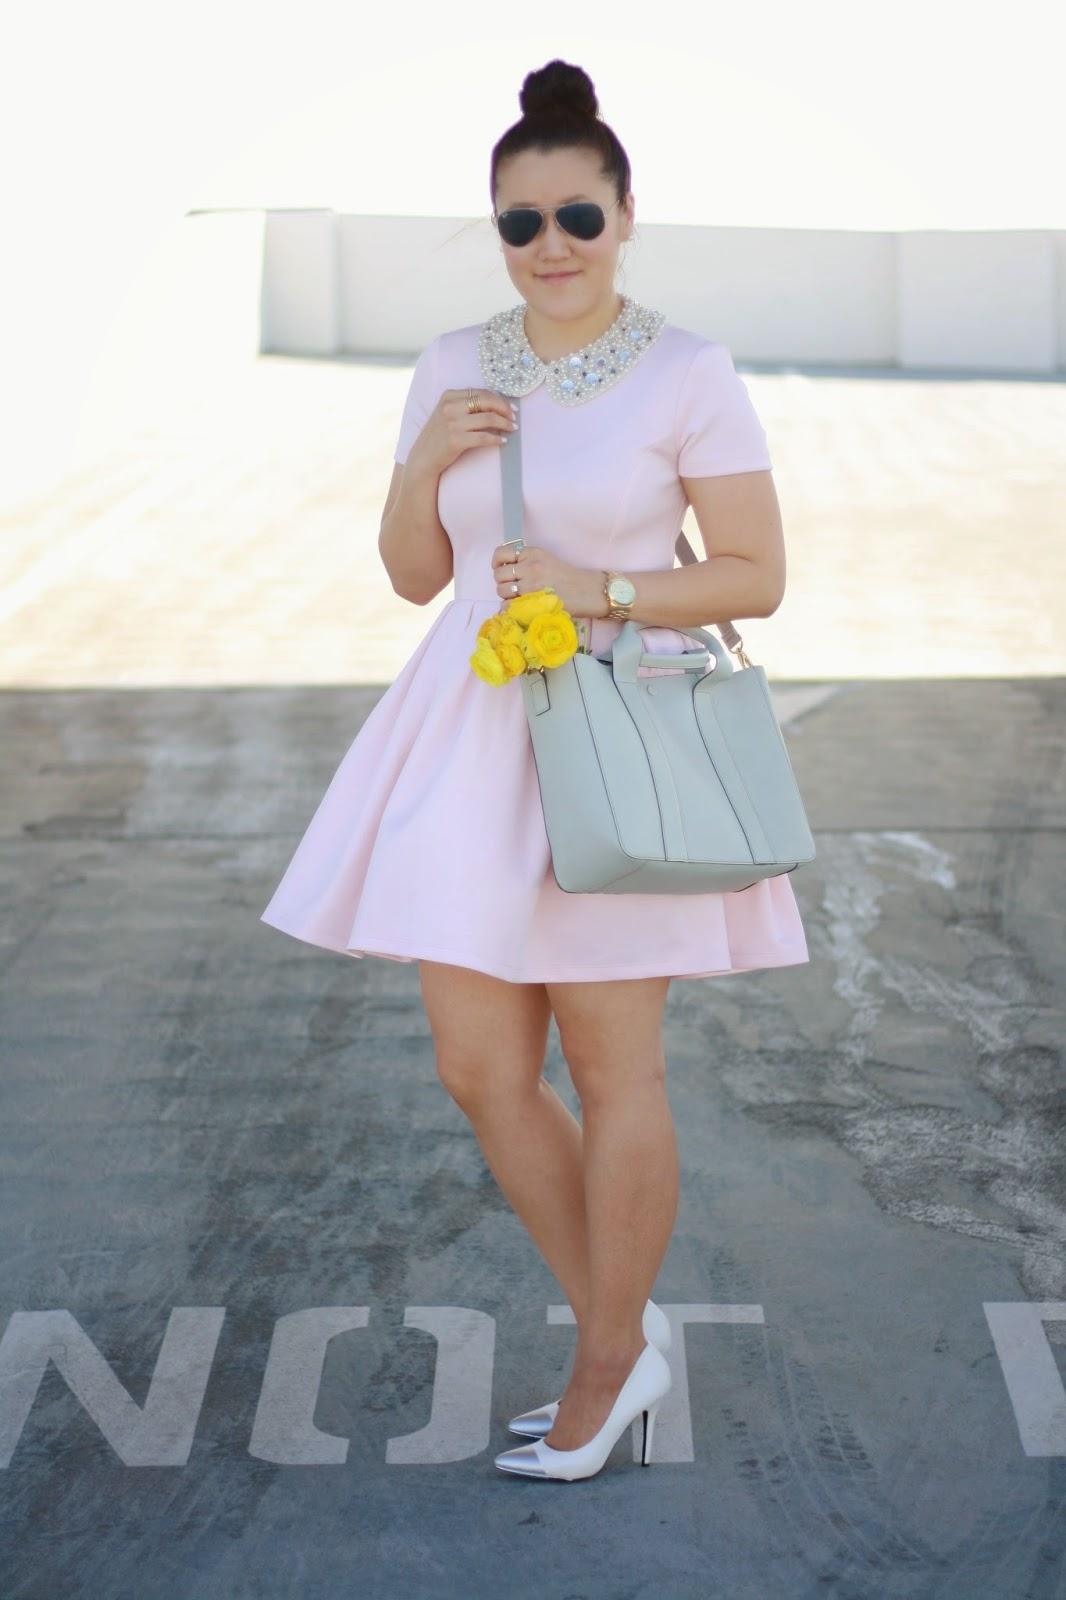 simplyxclassic, nordstrom, blush pink dress, grey gap cross body bag, orange county blogger, mommy blogger, style blog, fashion blog, bib necklace, collared necklace